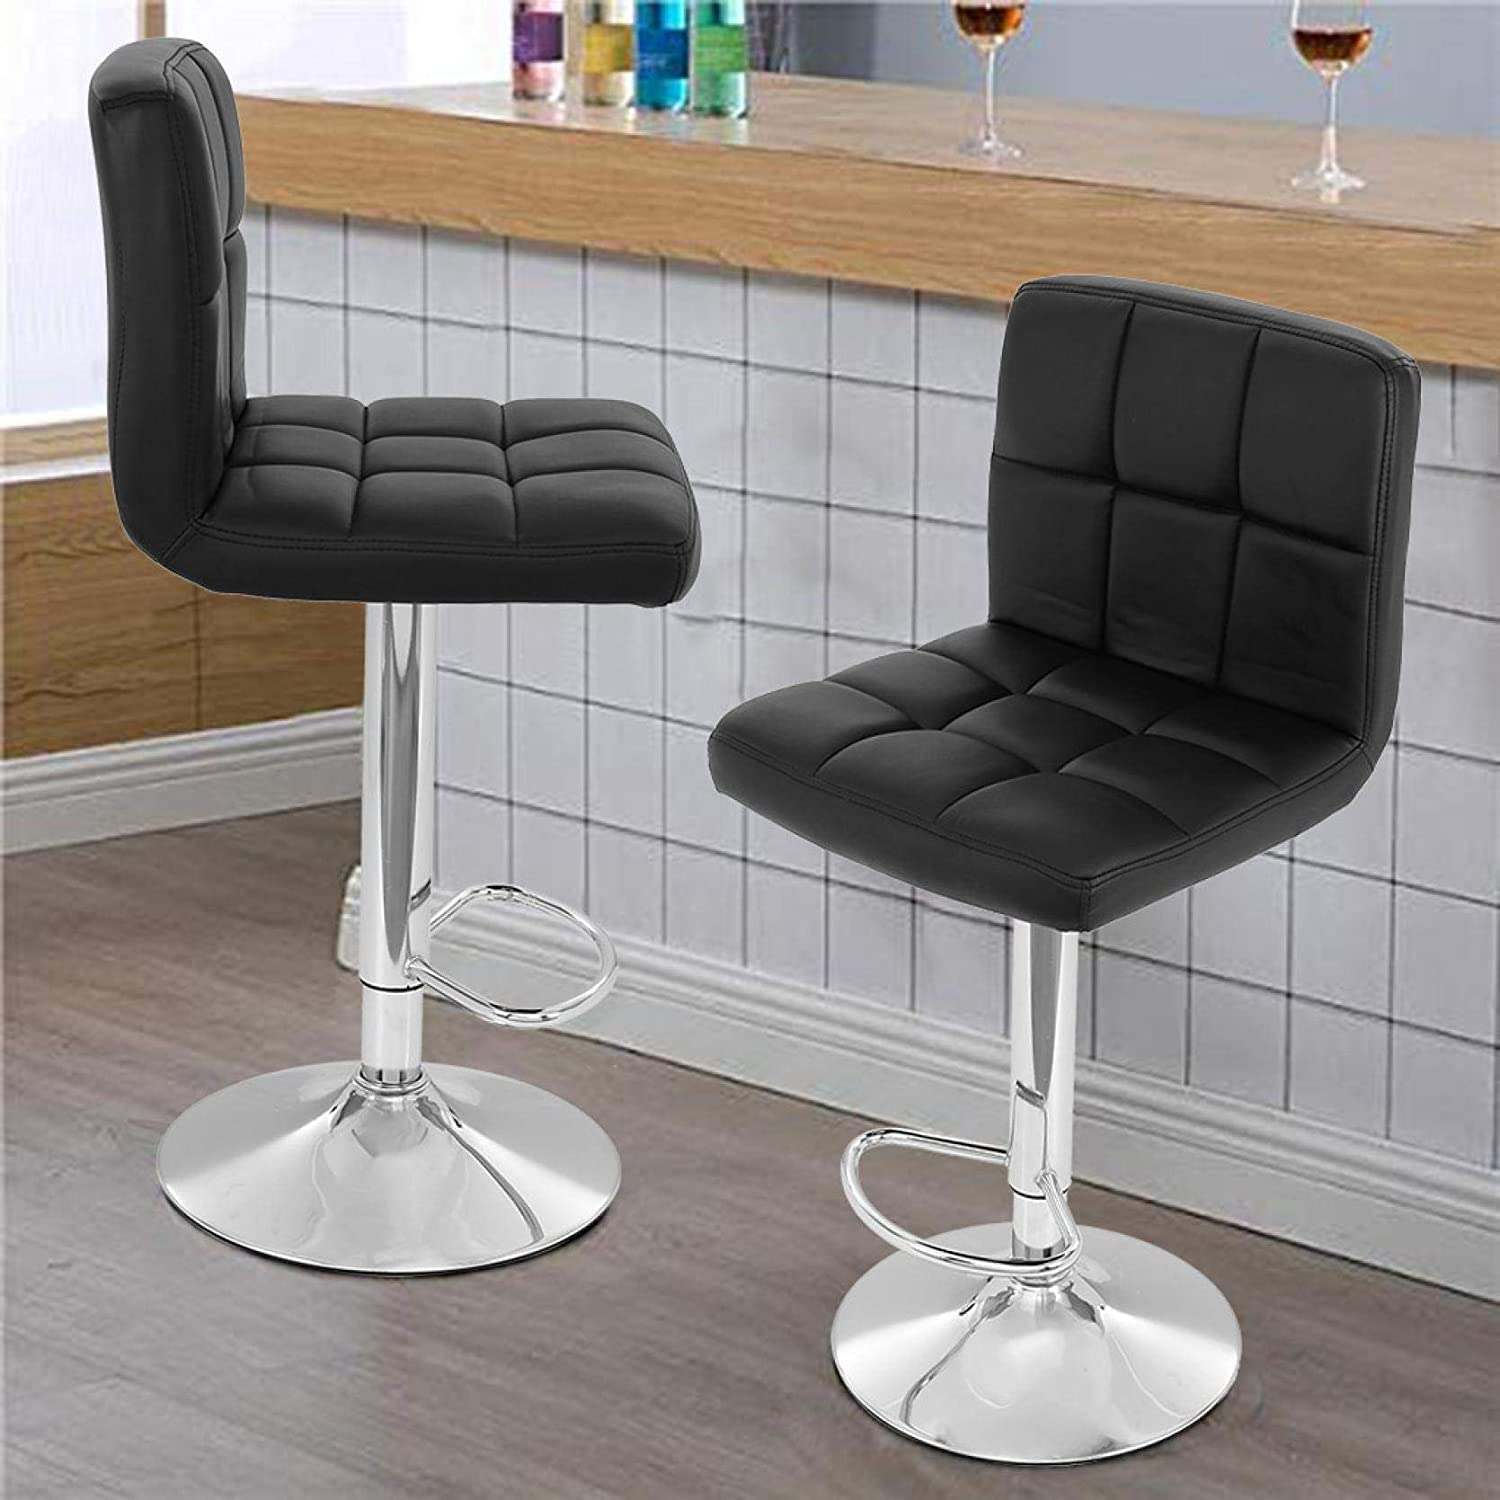 Amazon Promo Code for 2 Pcs Modern Square PU Leather Bar Stools